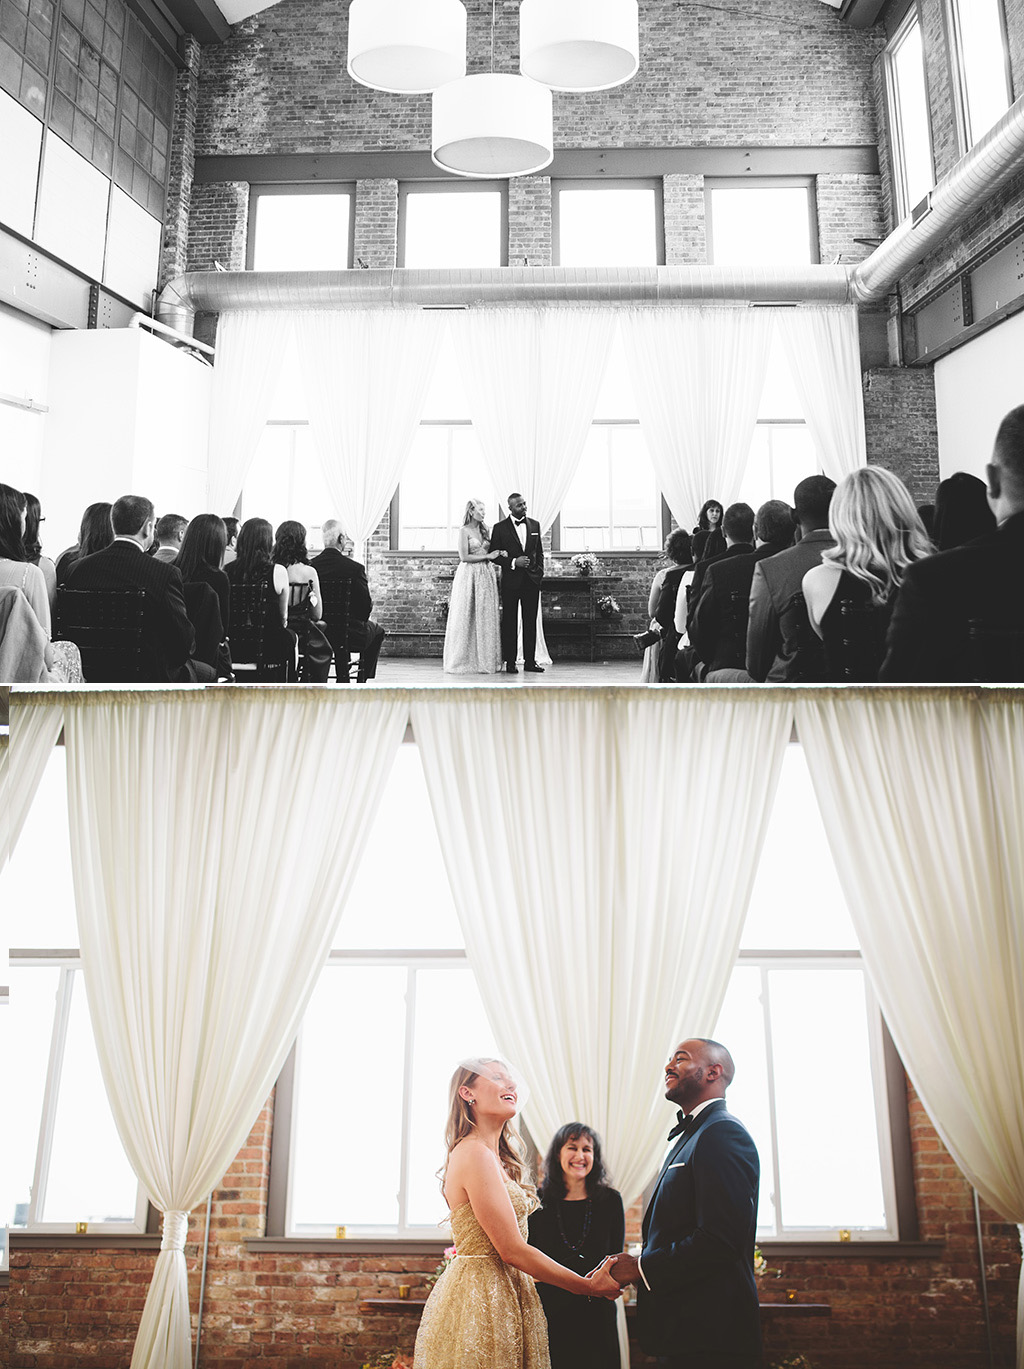 A city wedding in chicago